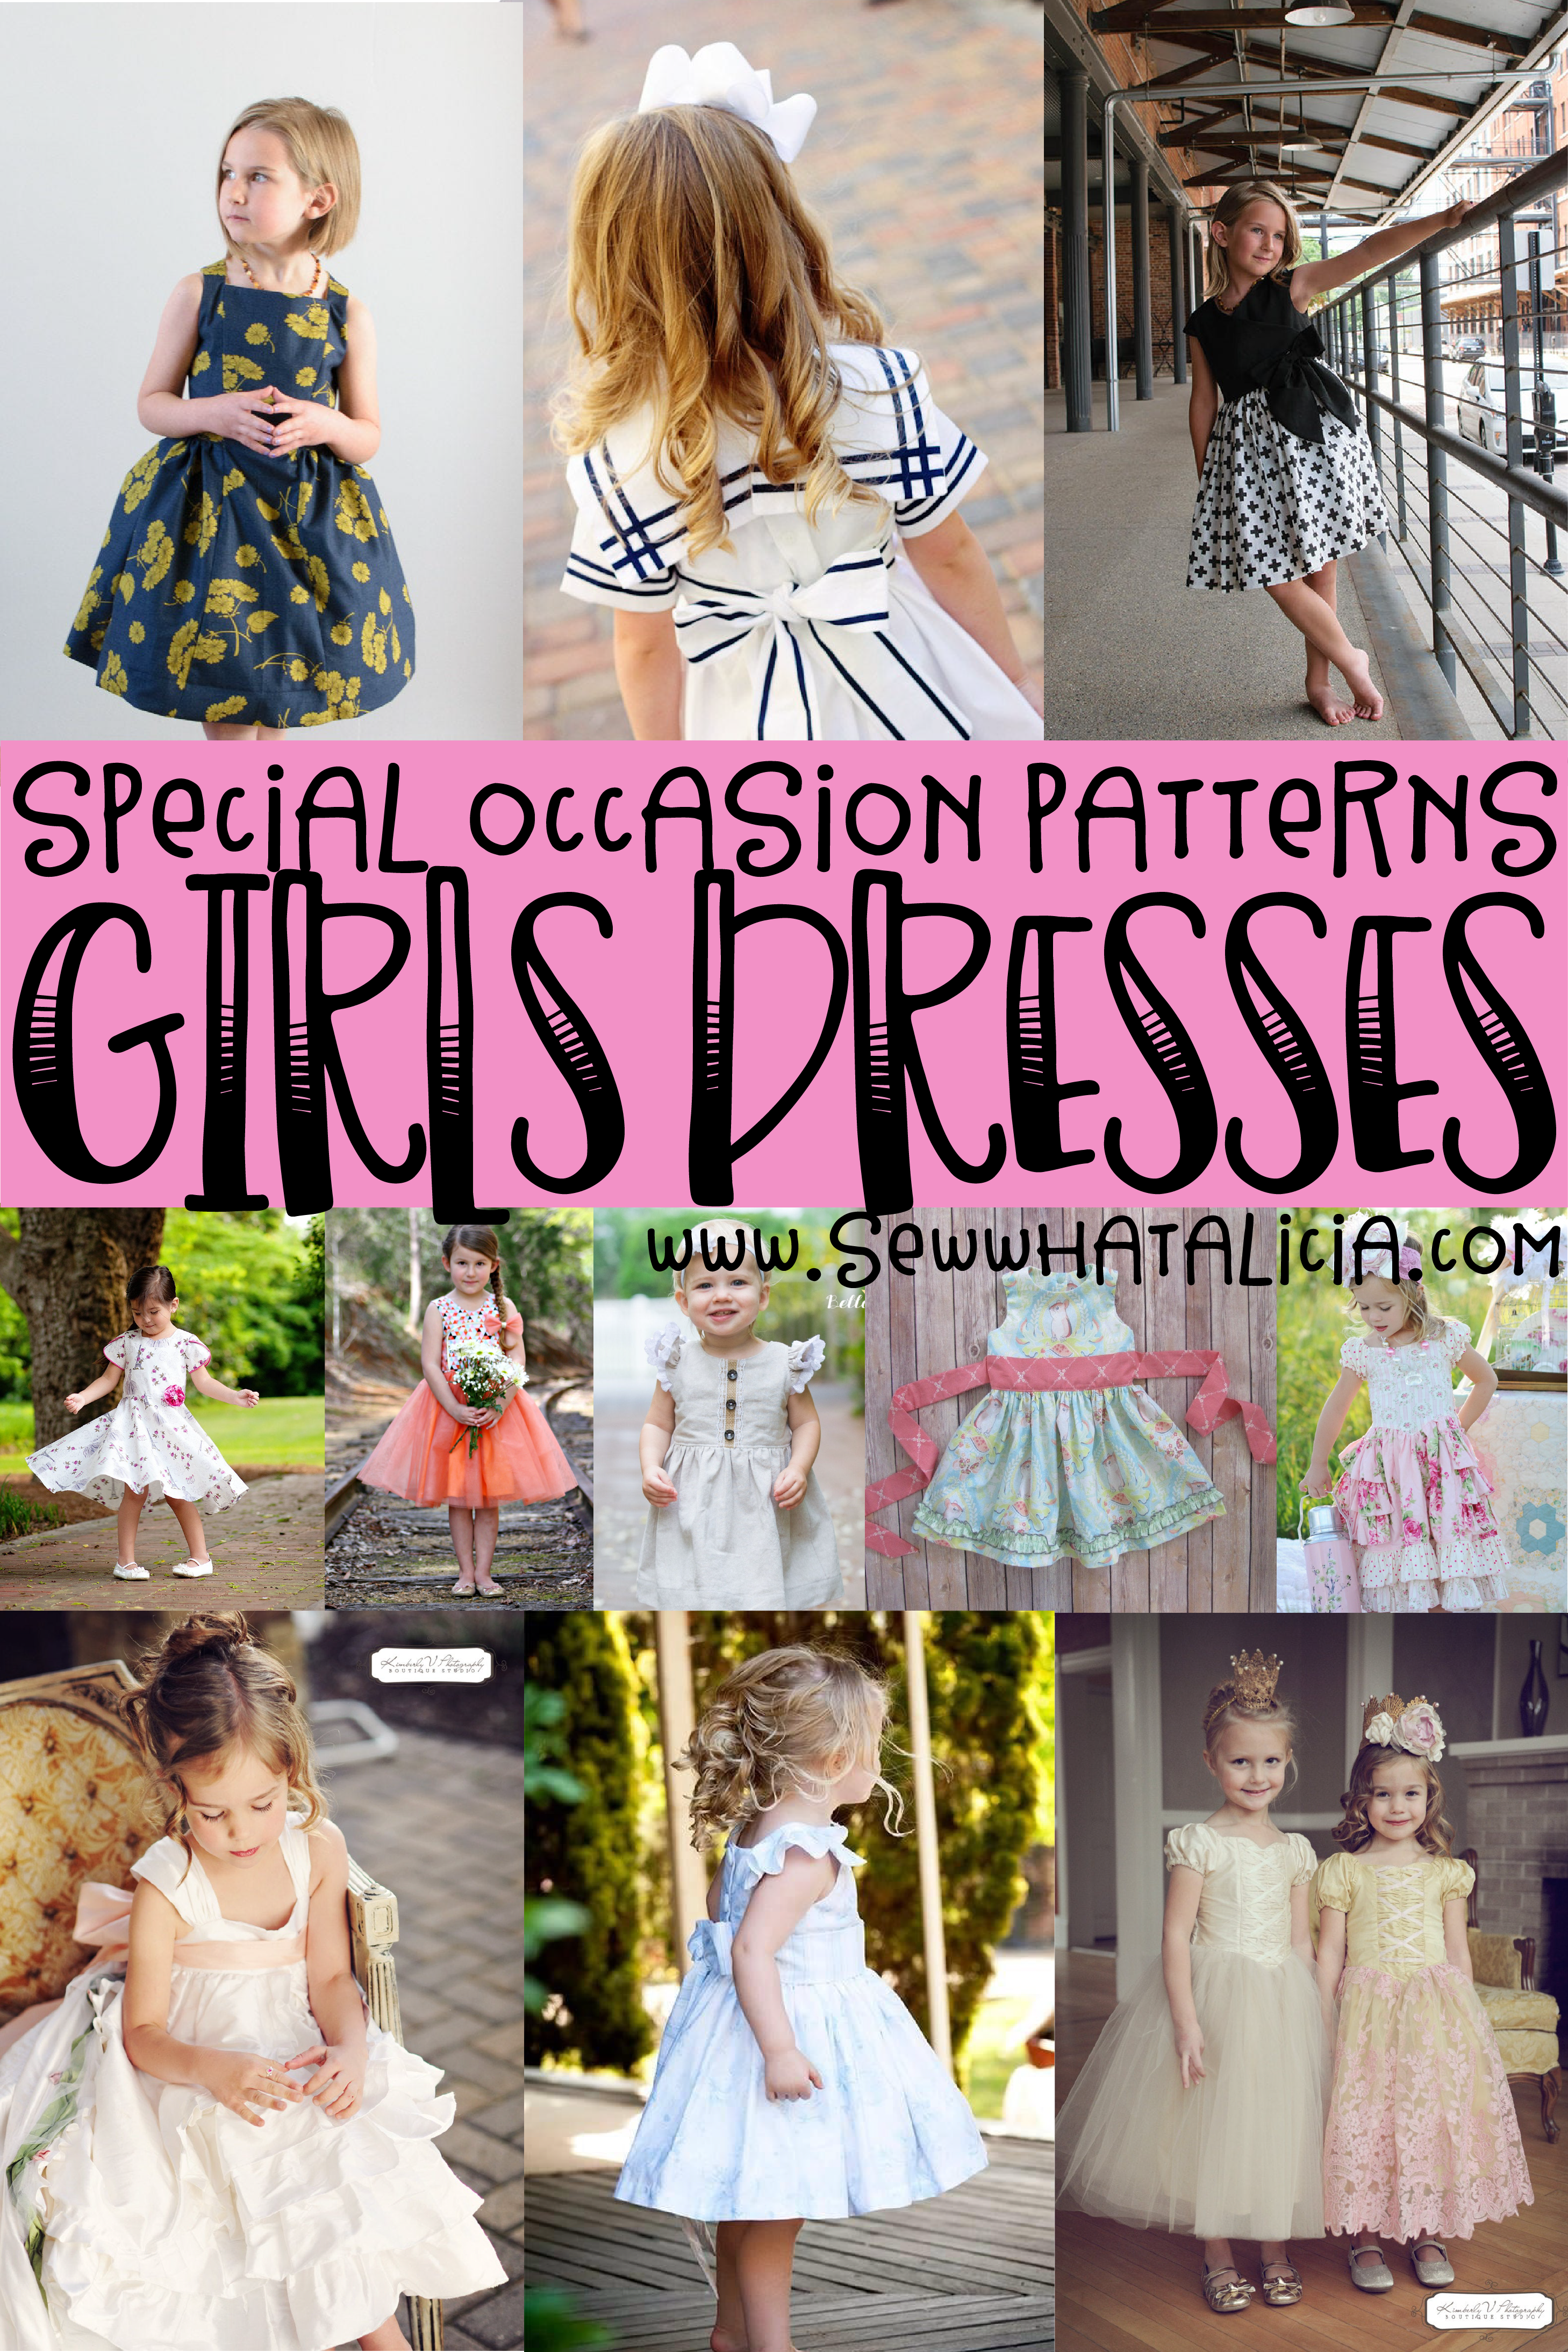 Girls Dress Sewing Patterns for Special Occasions  Girls dress